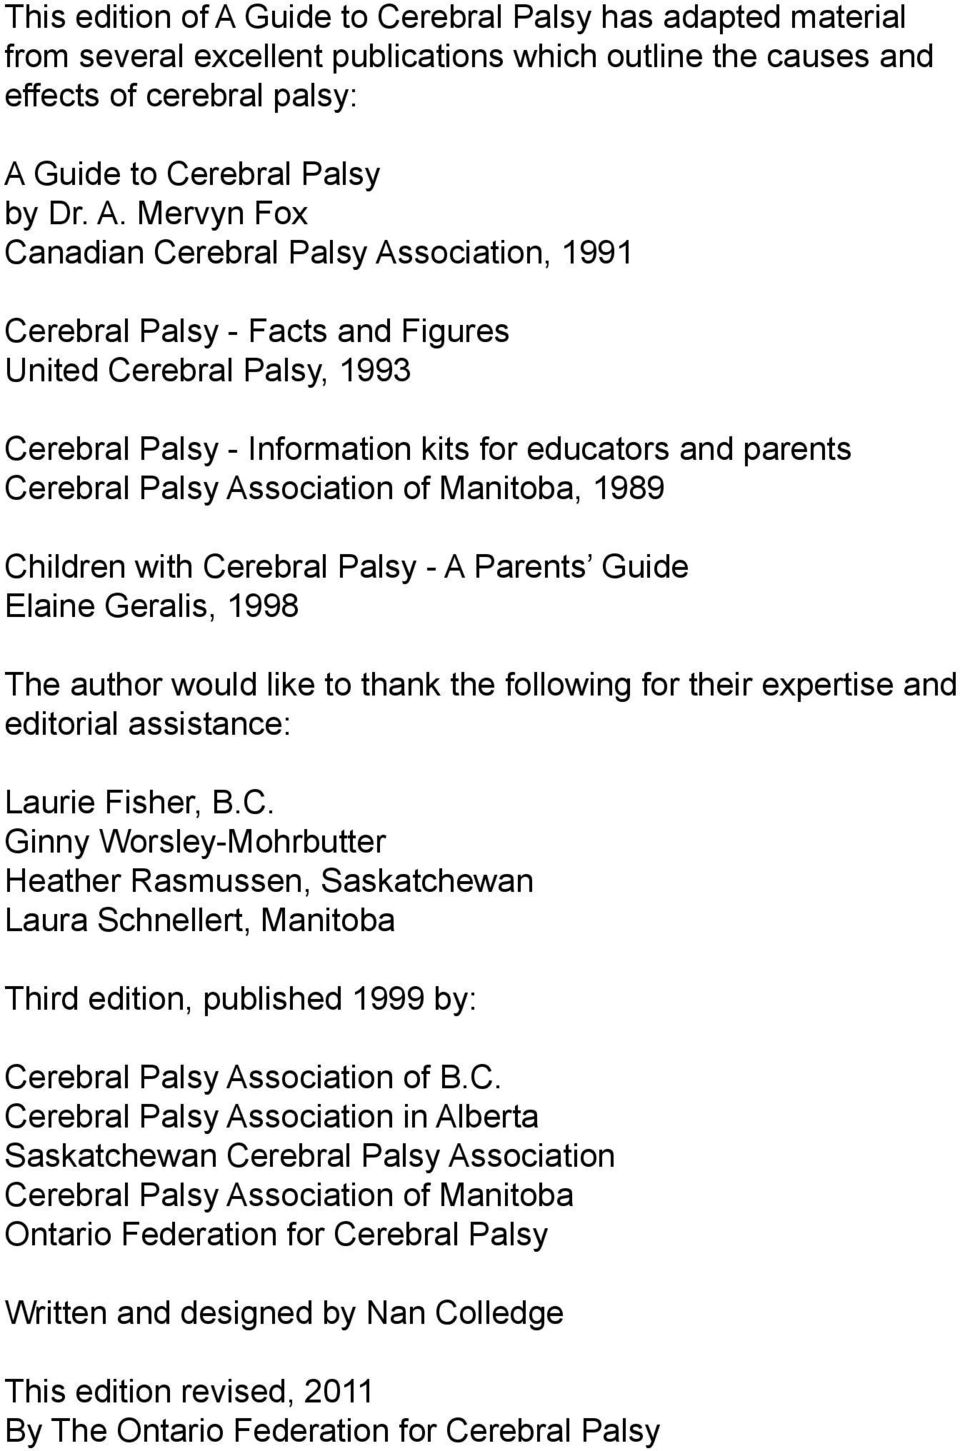 Guide to Cerebral Palsy by Dr. A.